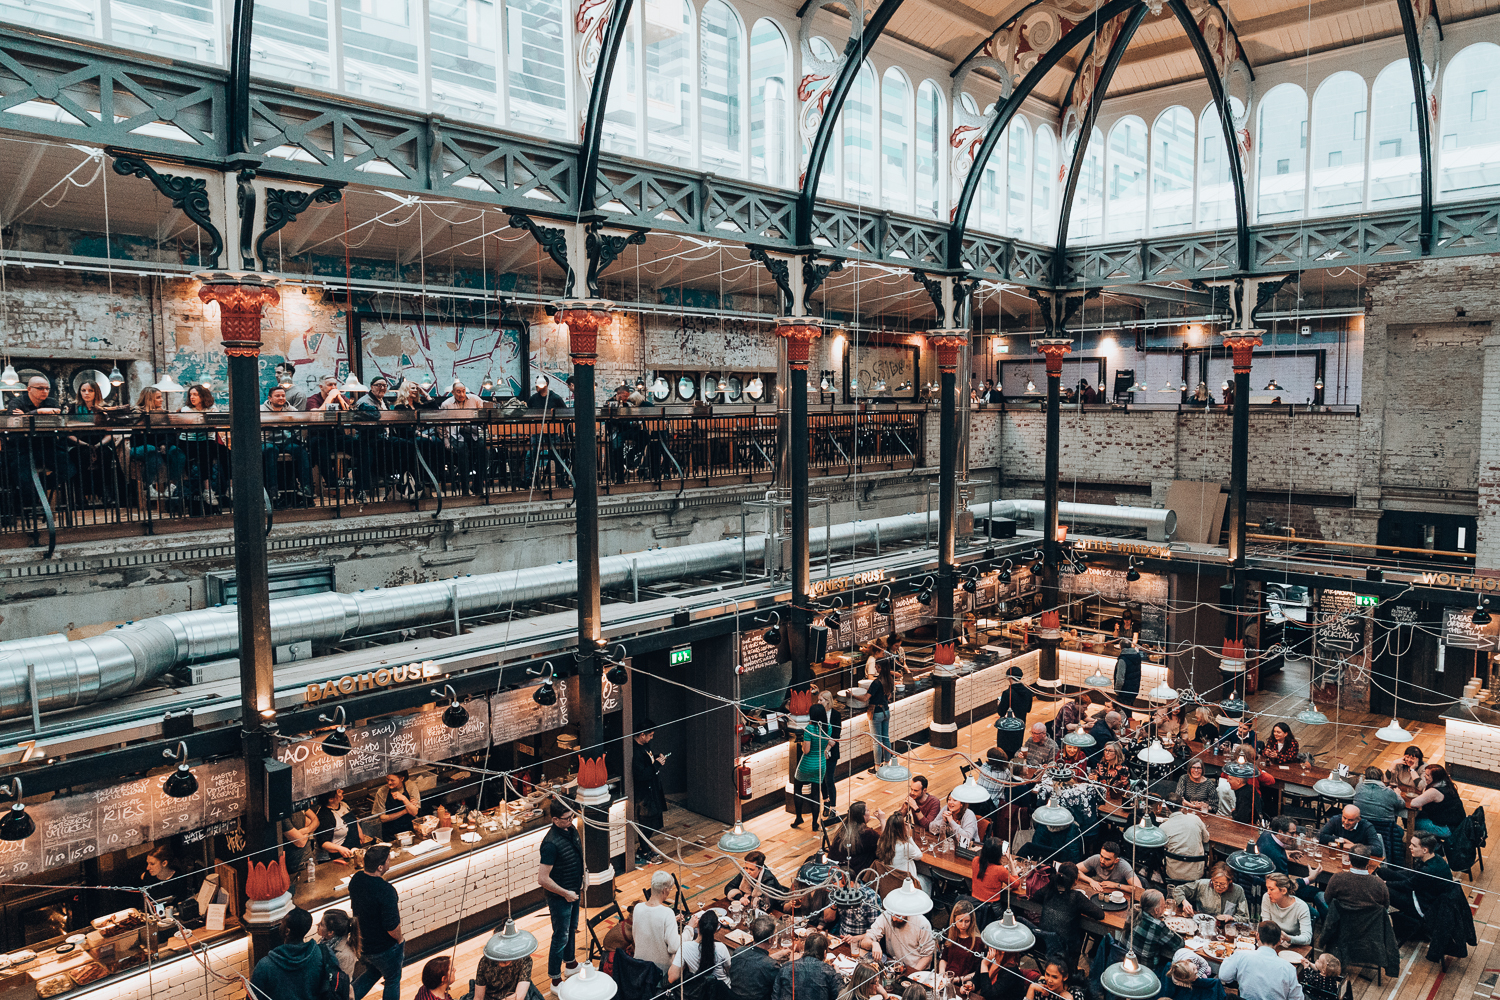 Looking for authentic places to eat in Manchester, England? This foodies guide to Manchester covers my favorite restaurants and dining halls, including things to do in Manchester and where to stay while in the city!